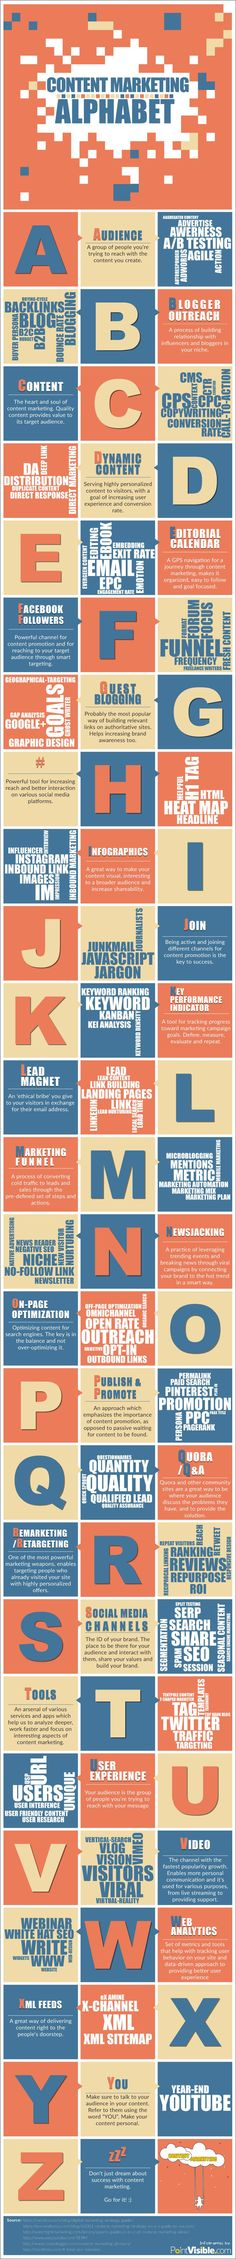 Back to Basics: The ABC's of Content Marketing [Infographic]